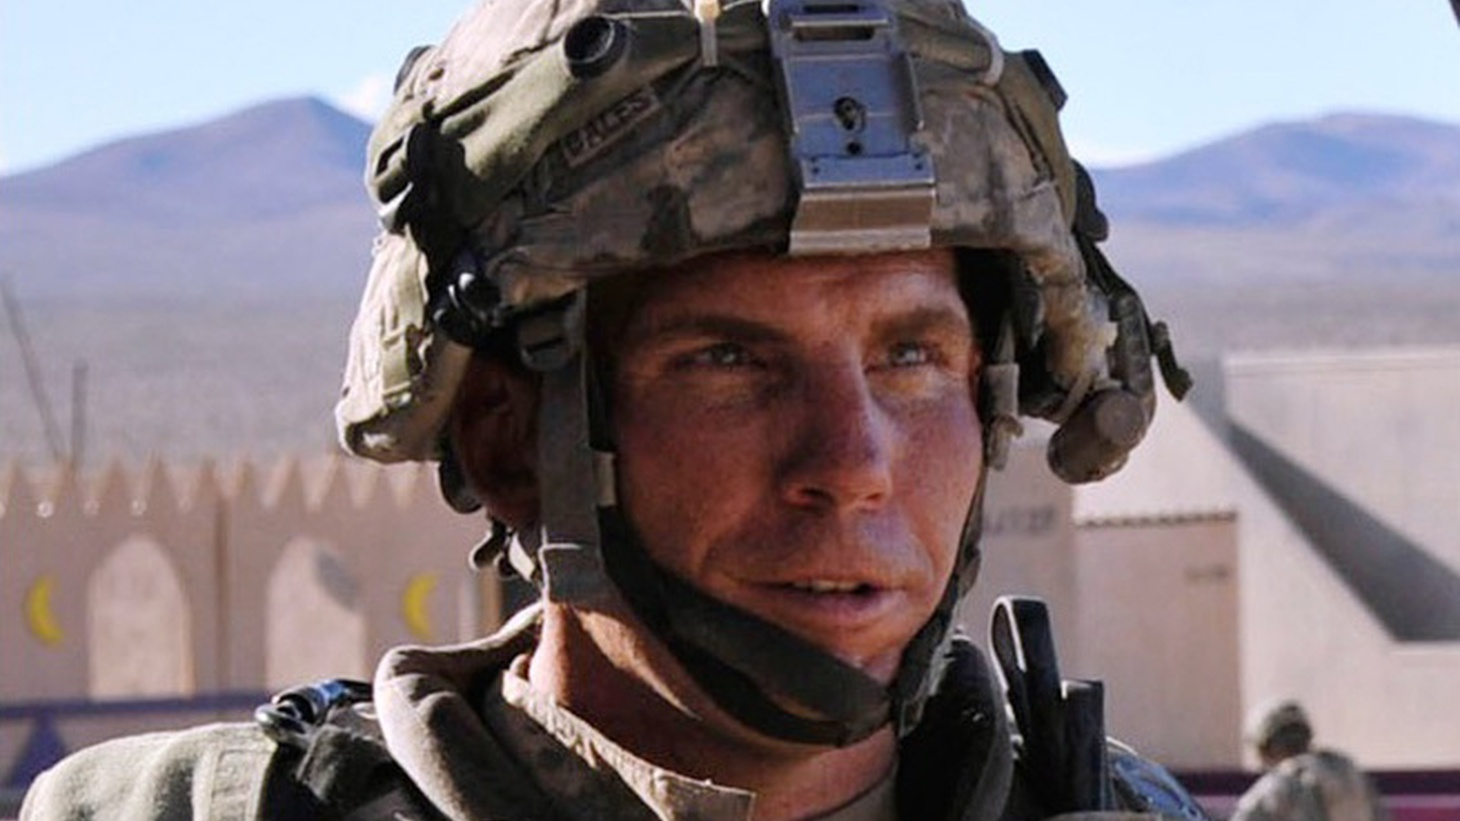 One of the most shocking moments of the war in Afghanistan came three years ago when American soldier Robert Bales murdered 16 Afghan men, women and children. For the first time,  Bales has opened up  about what happened that night. 